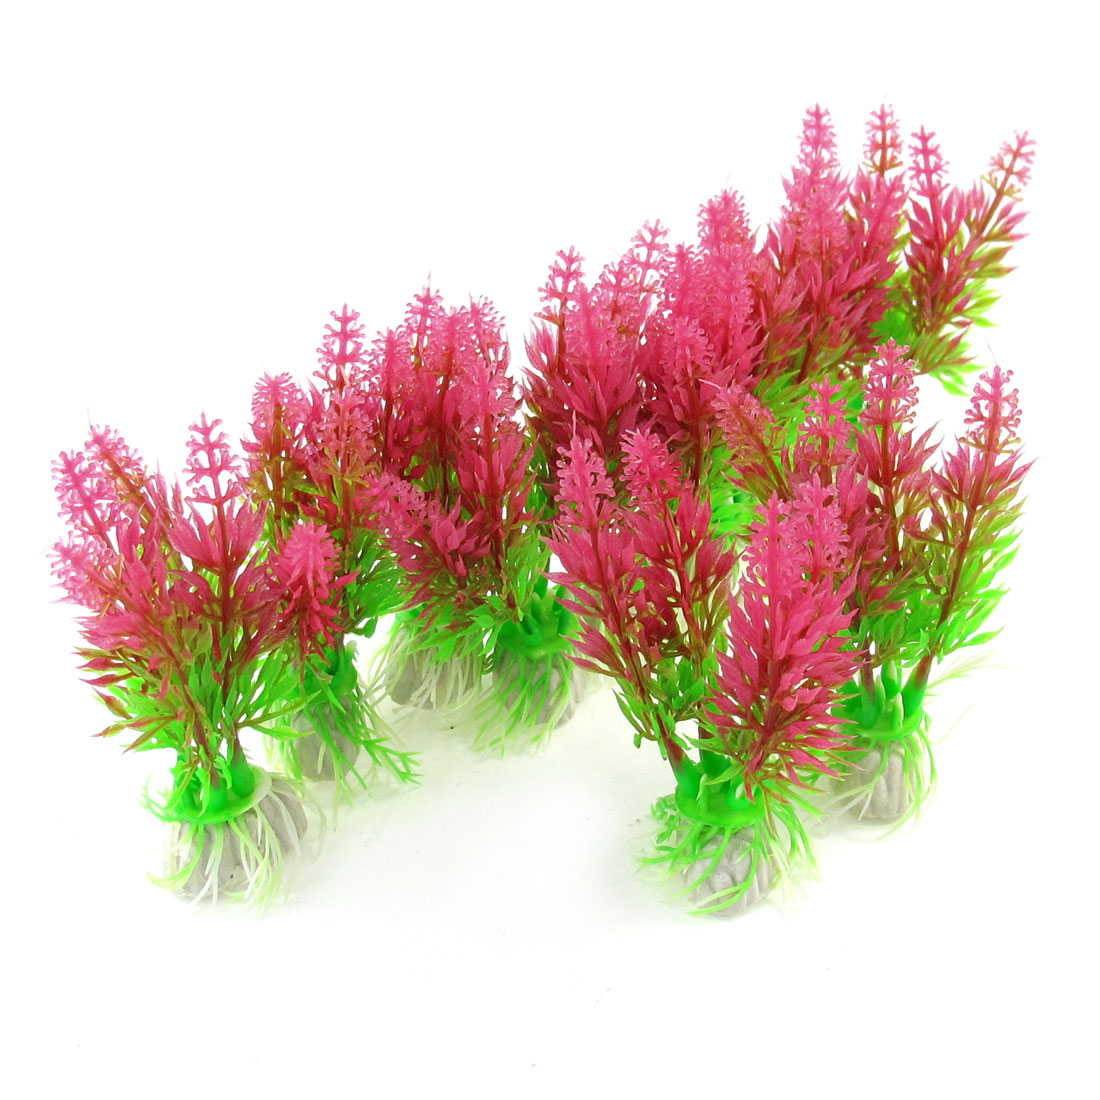 10 Pcs Height Red Green Emulational Water Grass Decor Plants for Fish Tank 3.9""